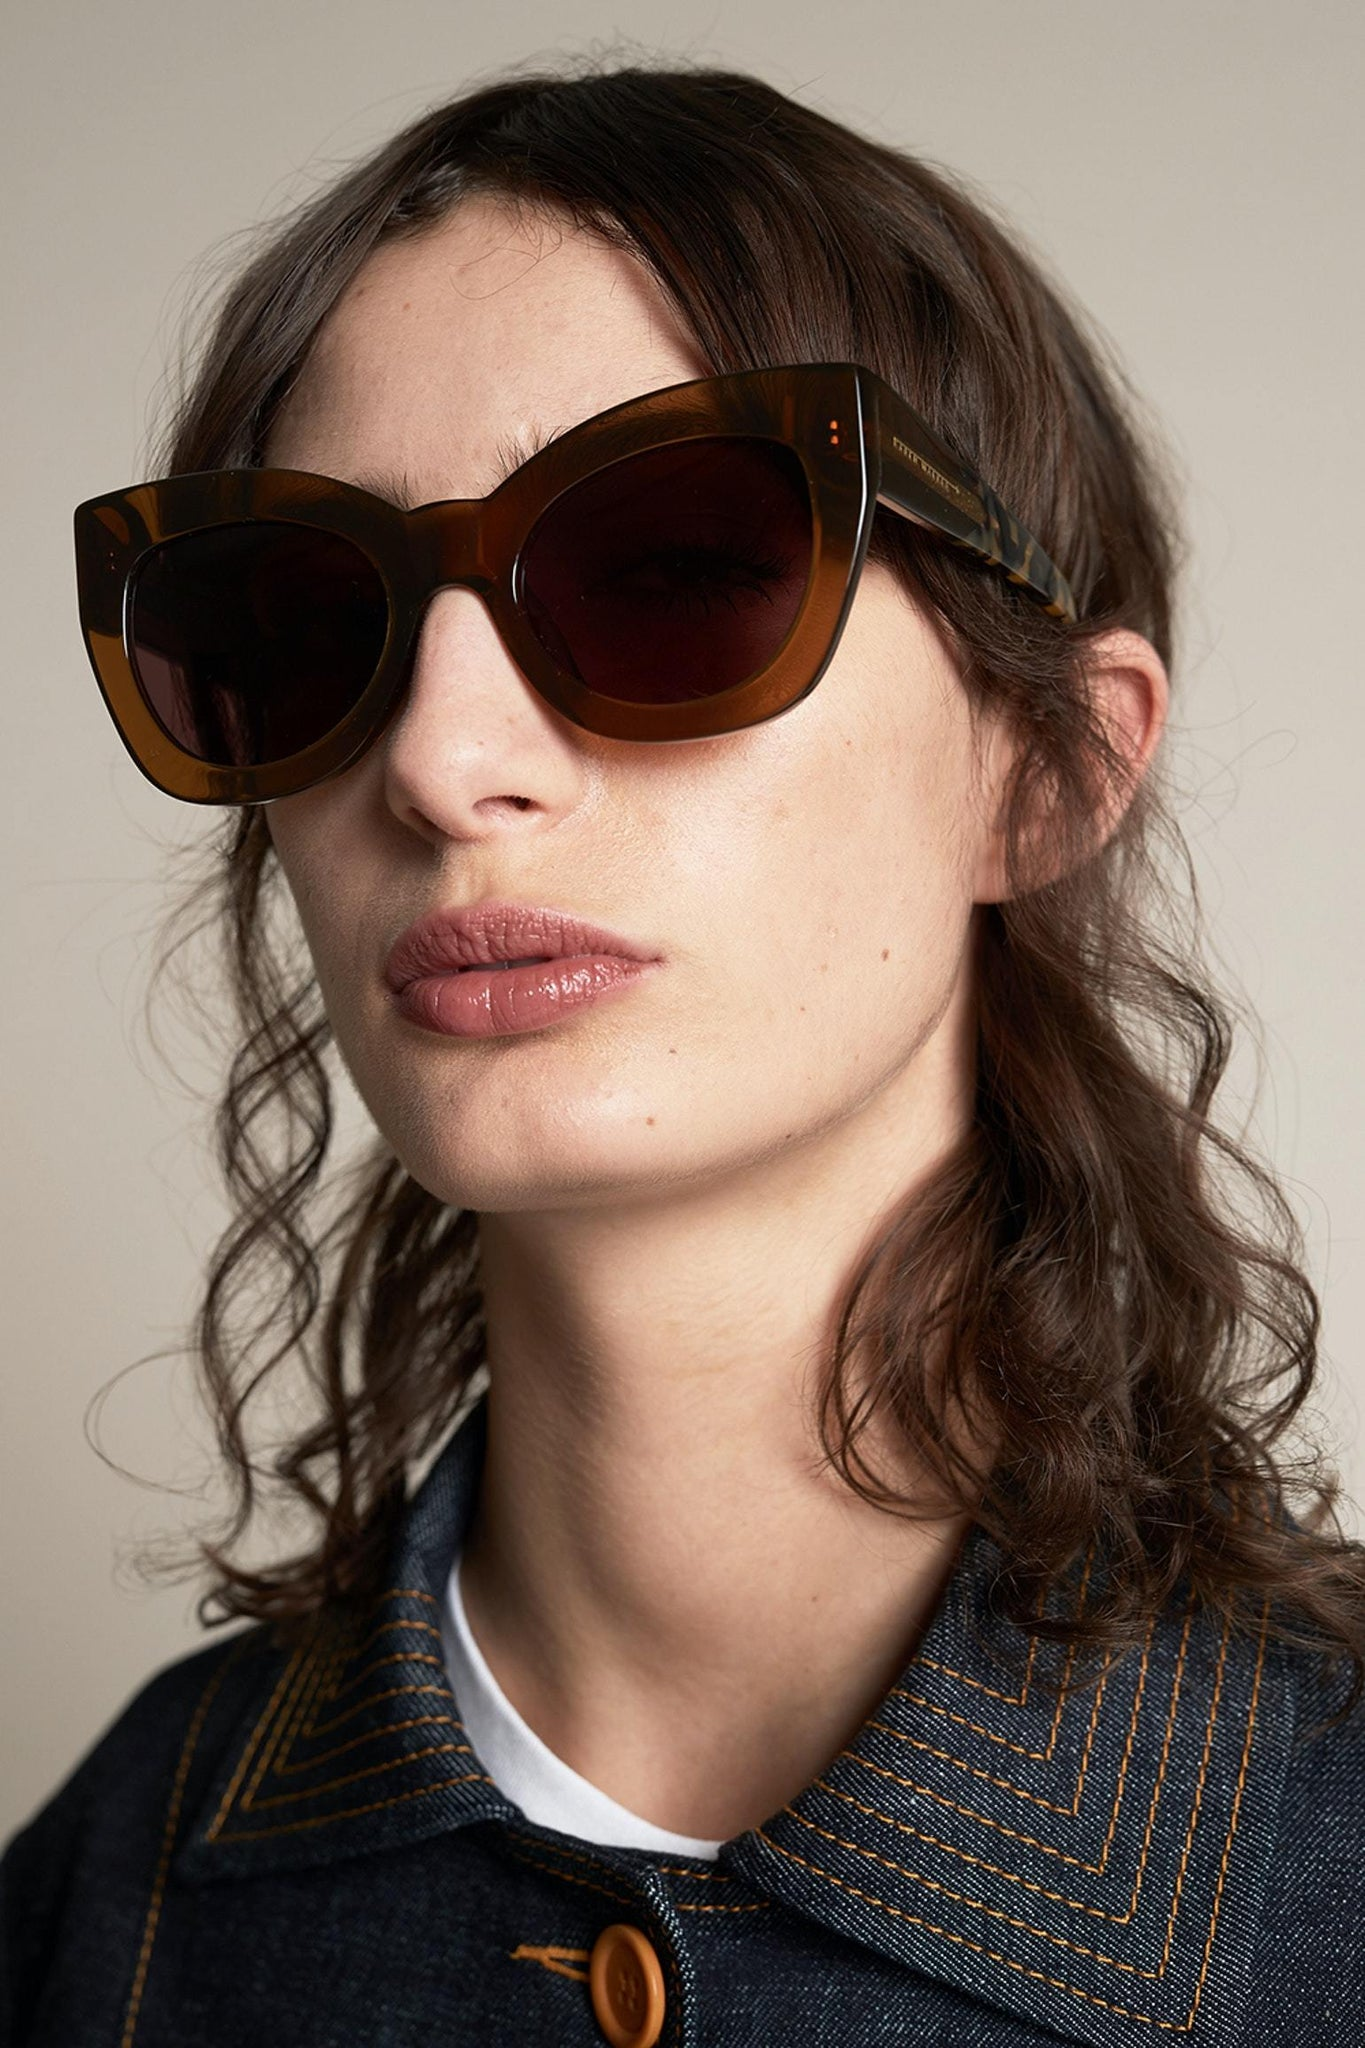 SUNSHADES EYEWEAR NZ Eyewear TANCRZYTRT Karen Walker | Northern Lights - Tan Crazy Tort